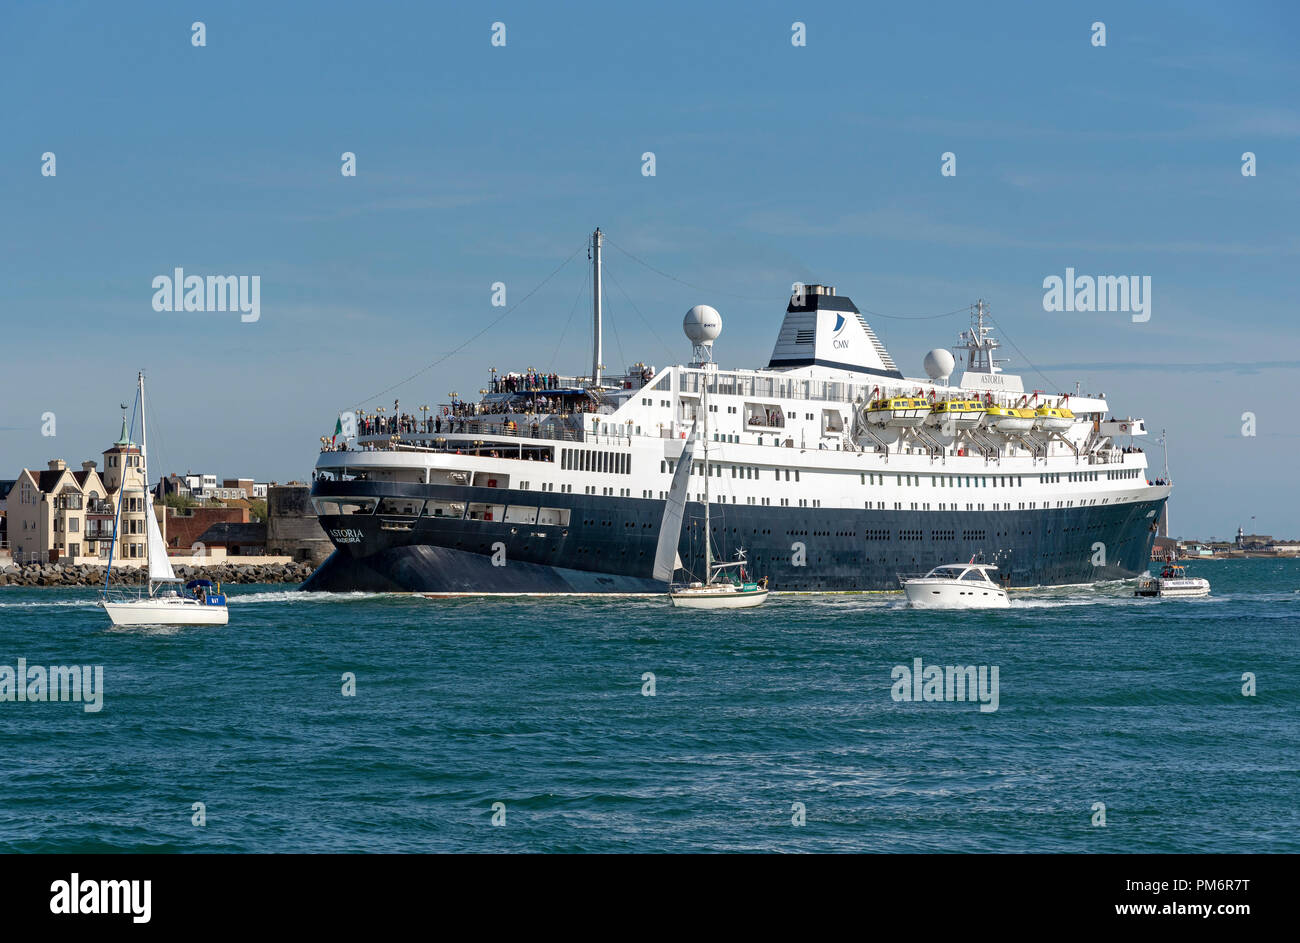 MV Astoria departing Portsmouth Harbour, England UK. She came into service in 1946 and is the second oldest cruise ship in service. Stock Photo